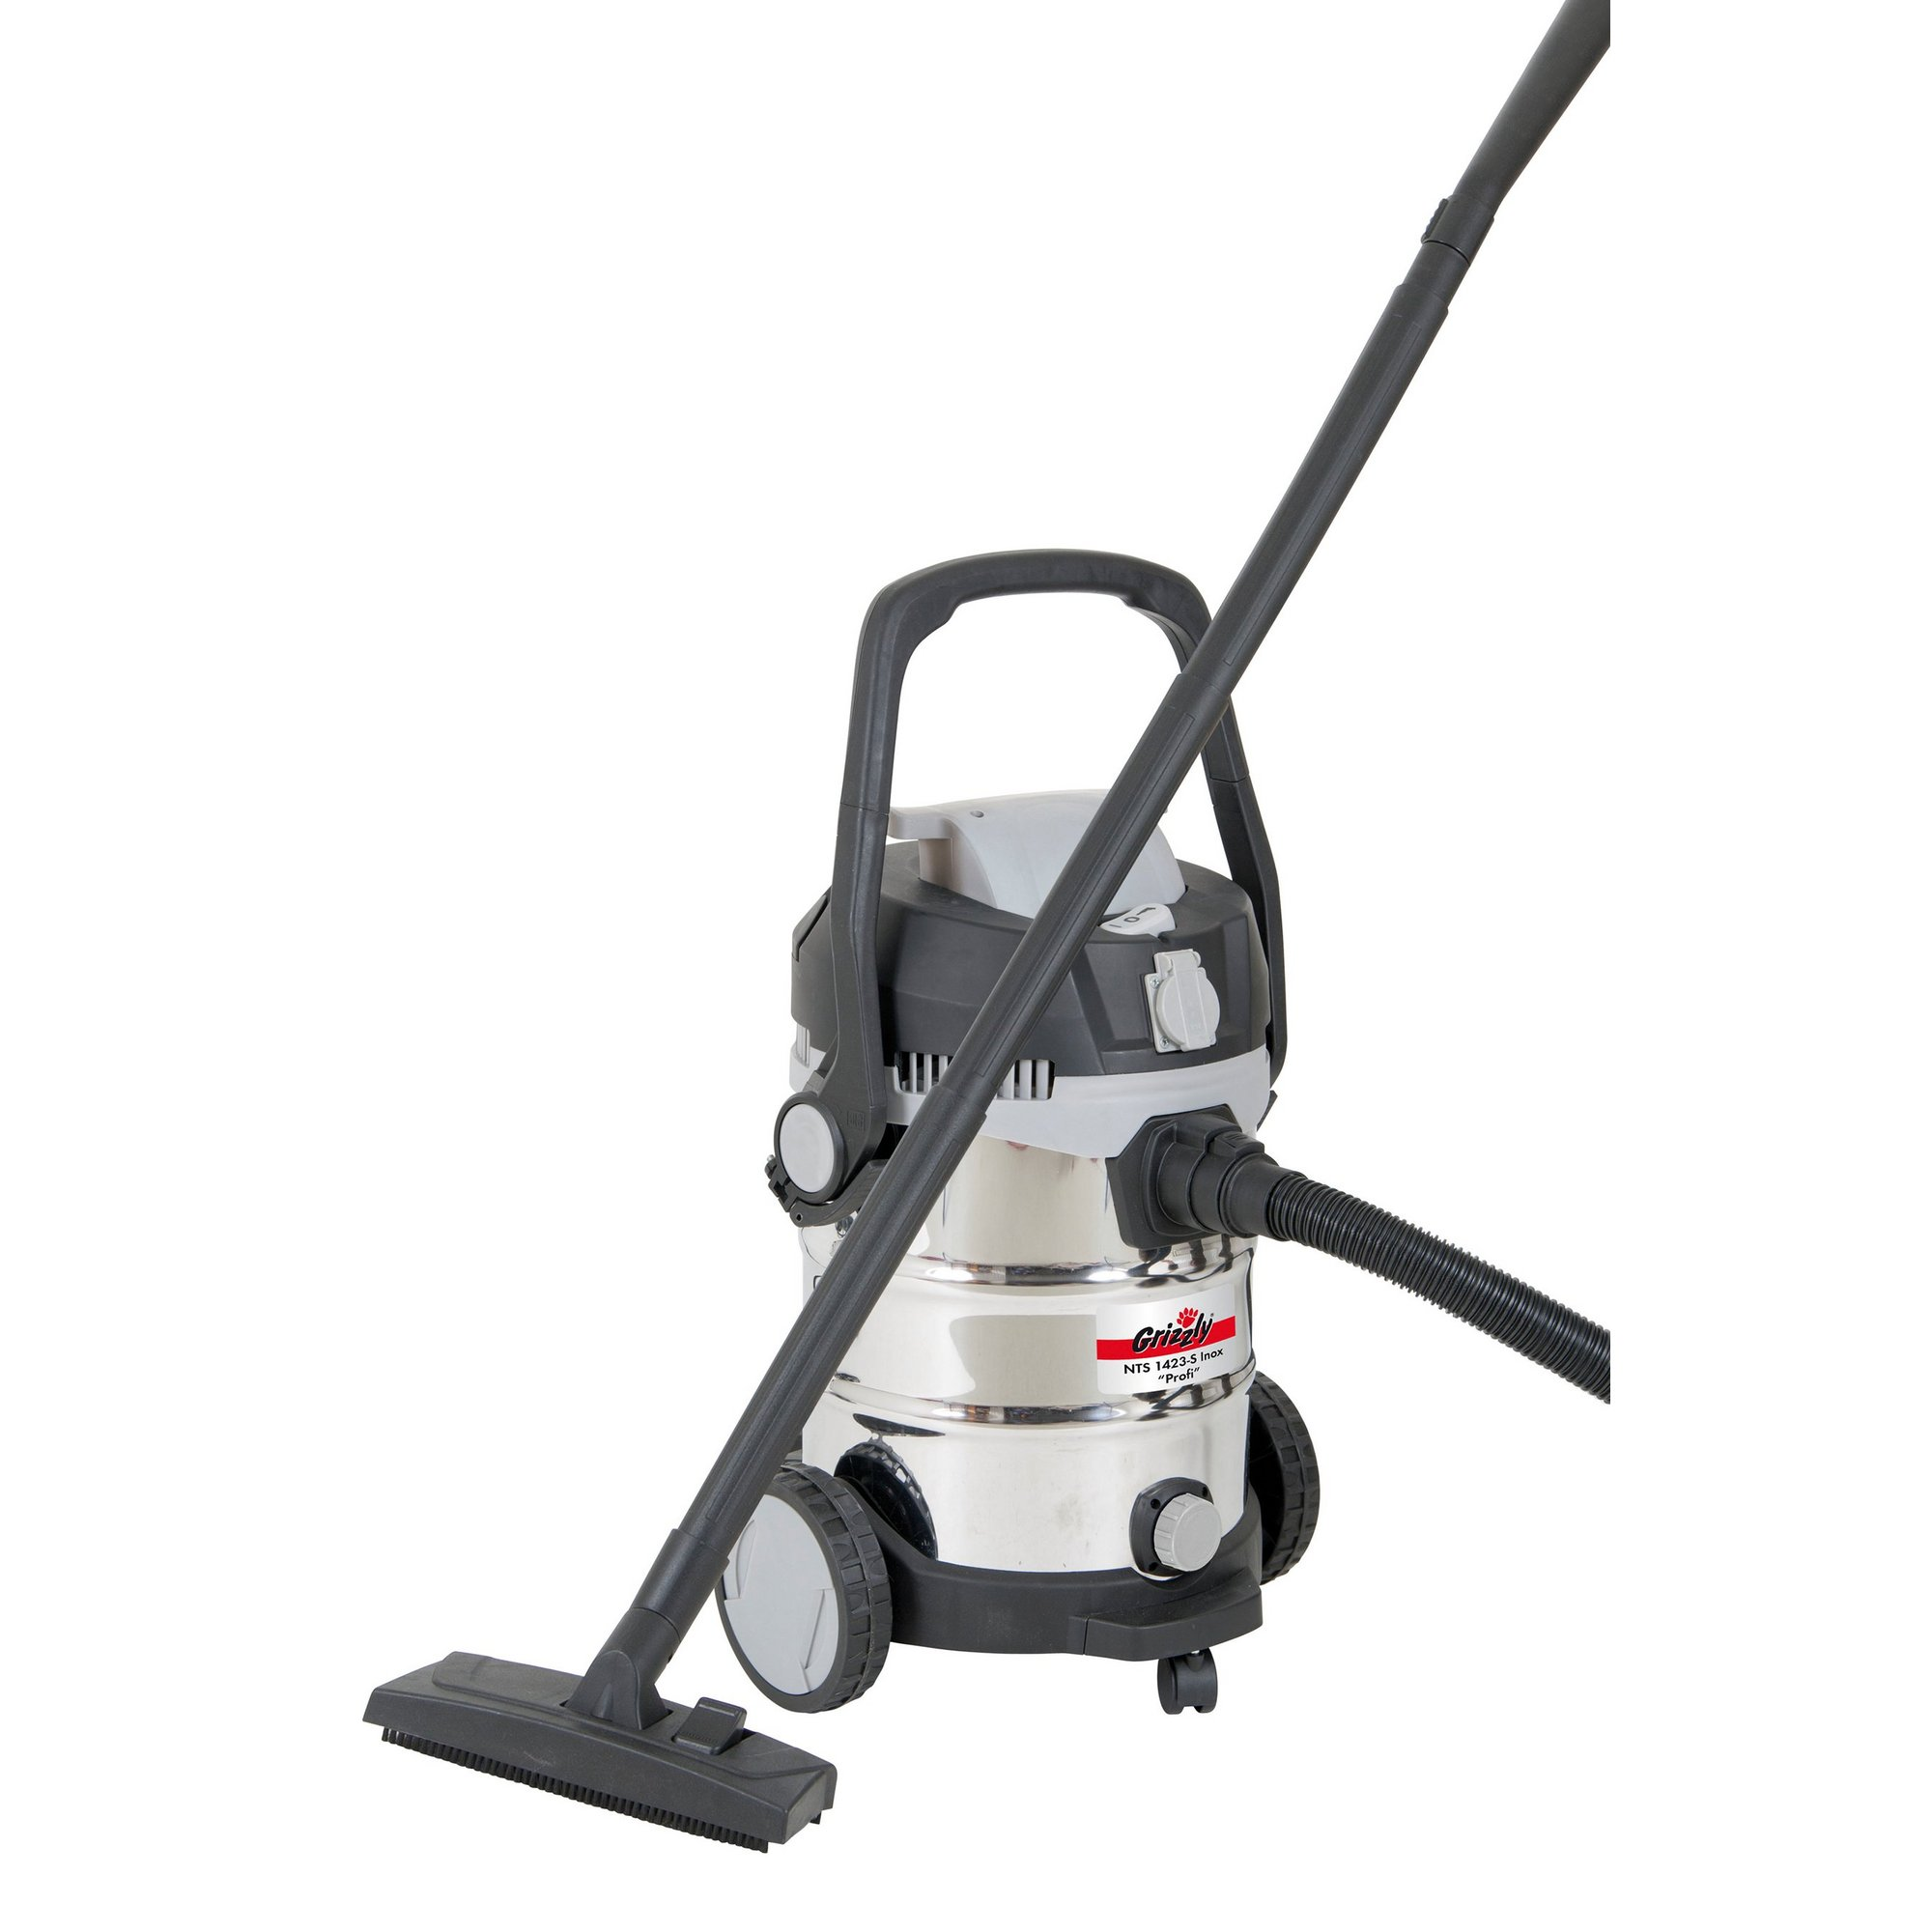 Image of Grizzly Wet and Dry Vacuum Cleaner